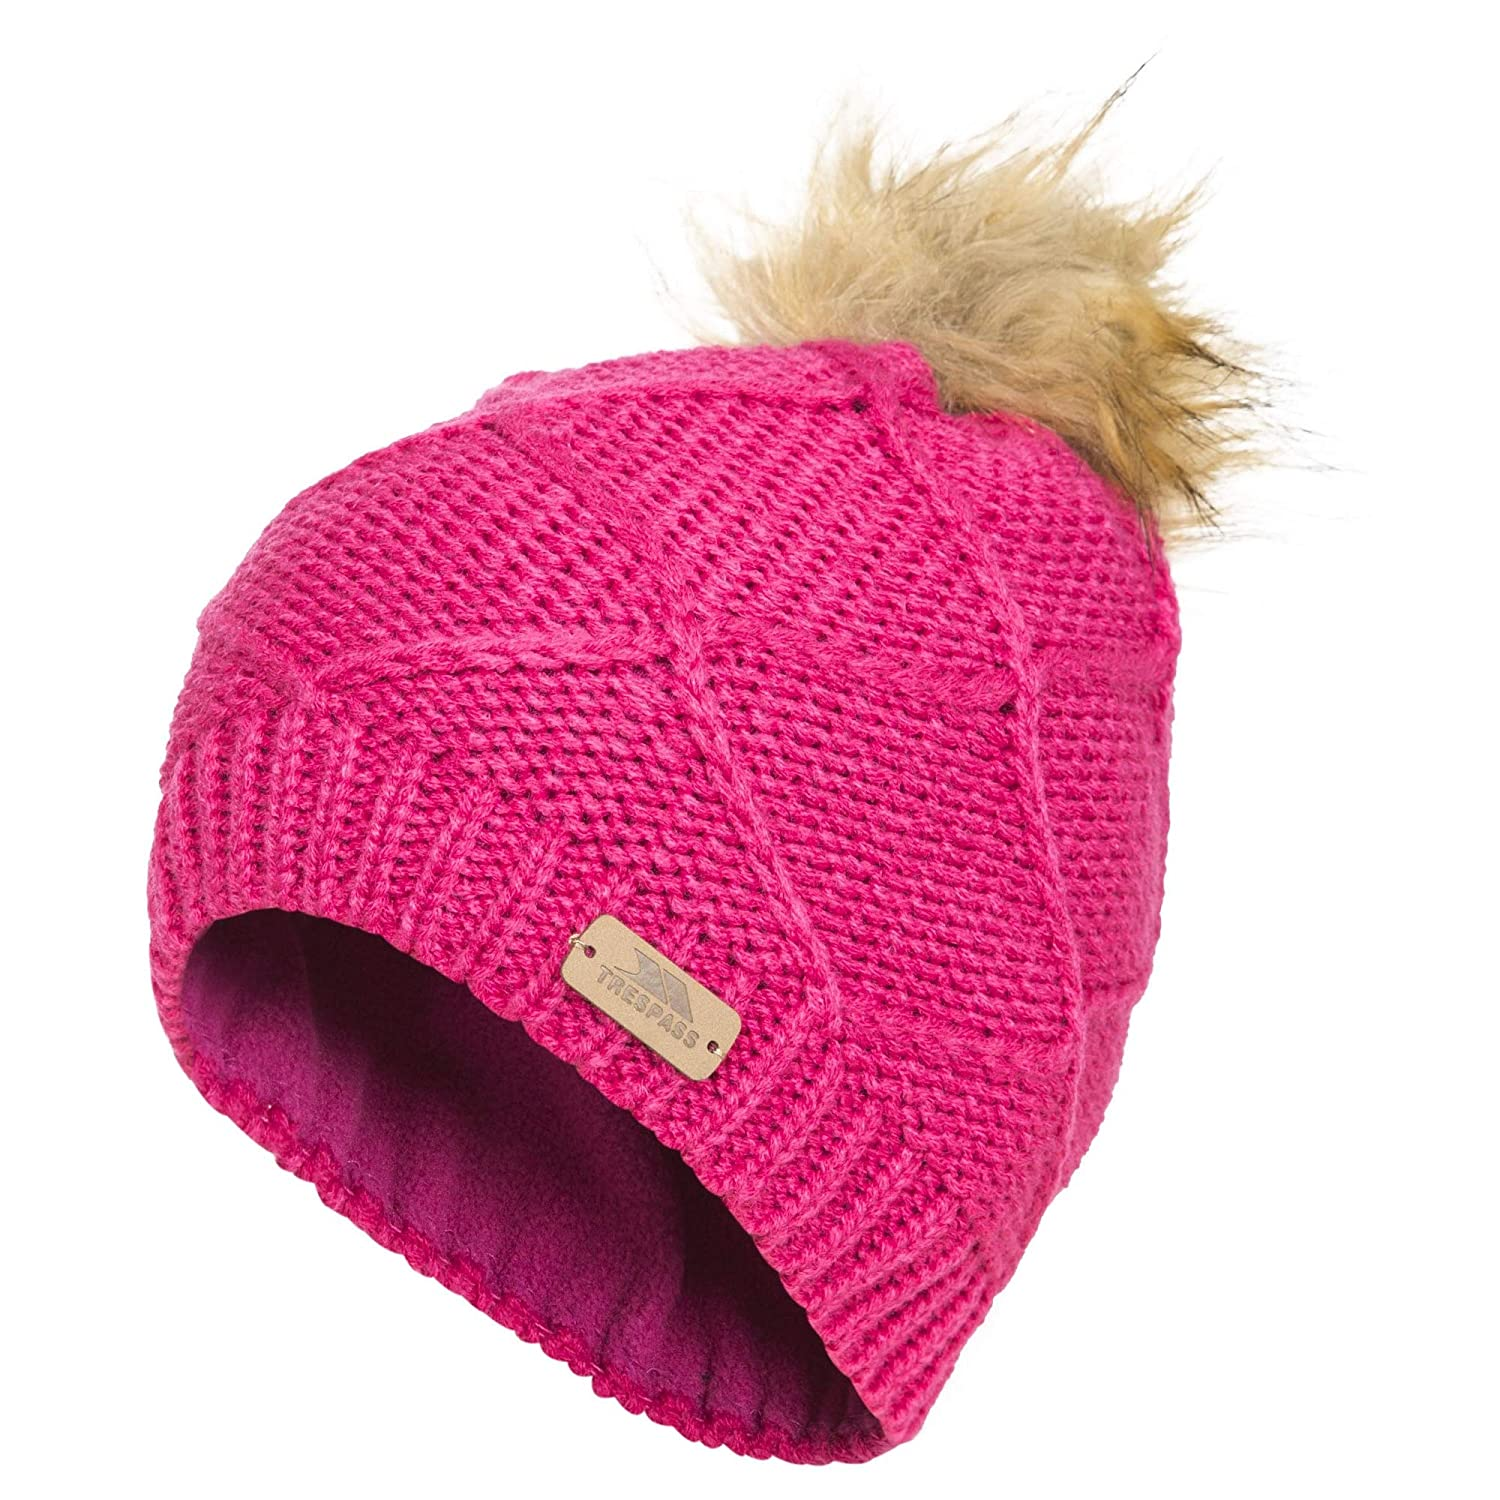 Trespass - Tanisha - Berretto con Pompon in Pelliccia Ecologica - Bambina   Amazon.it  Abbigliamento d91662f8abb7